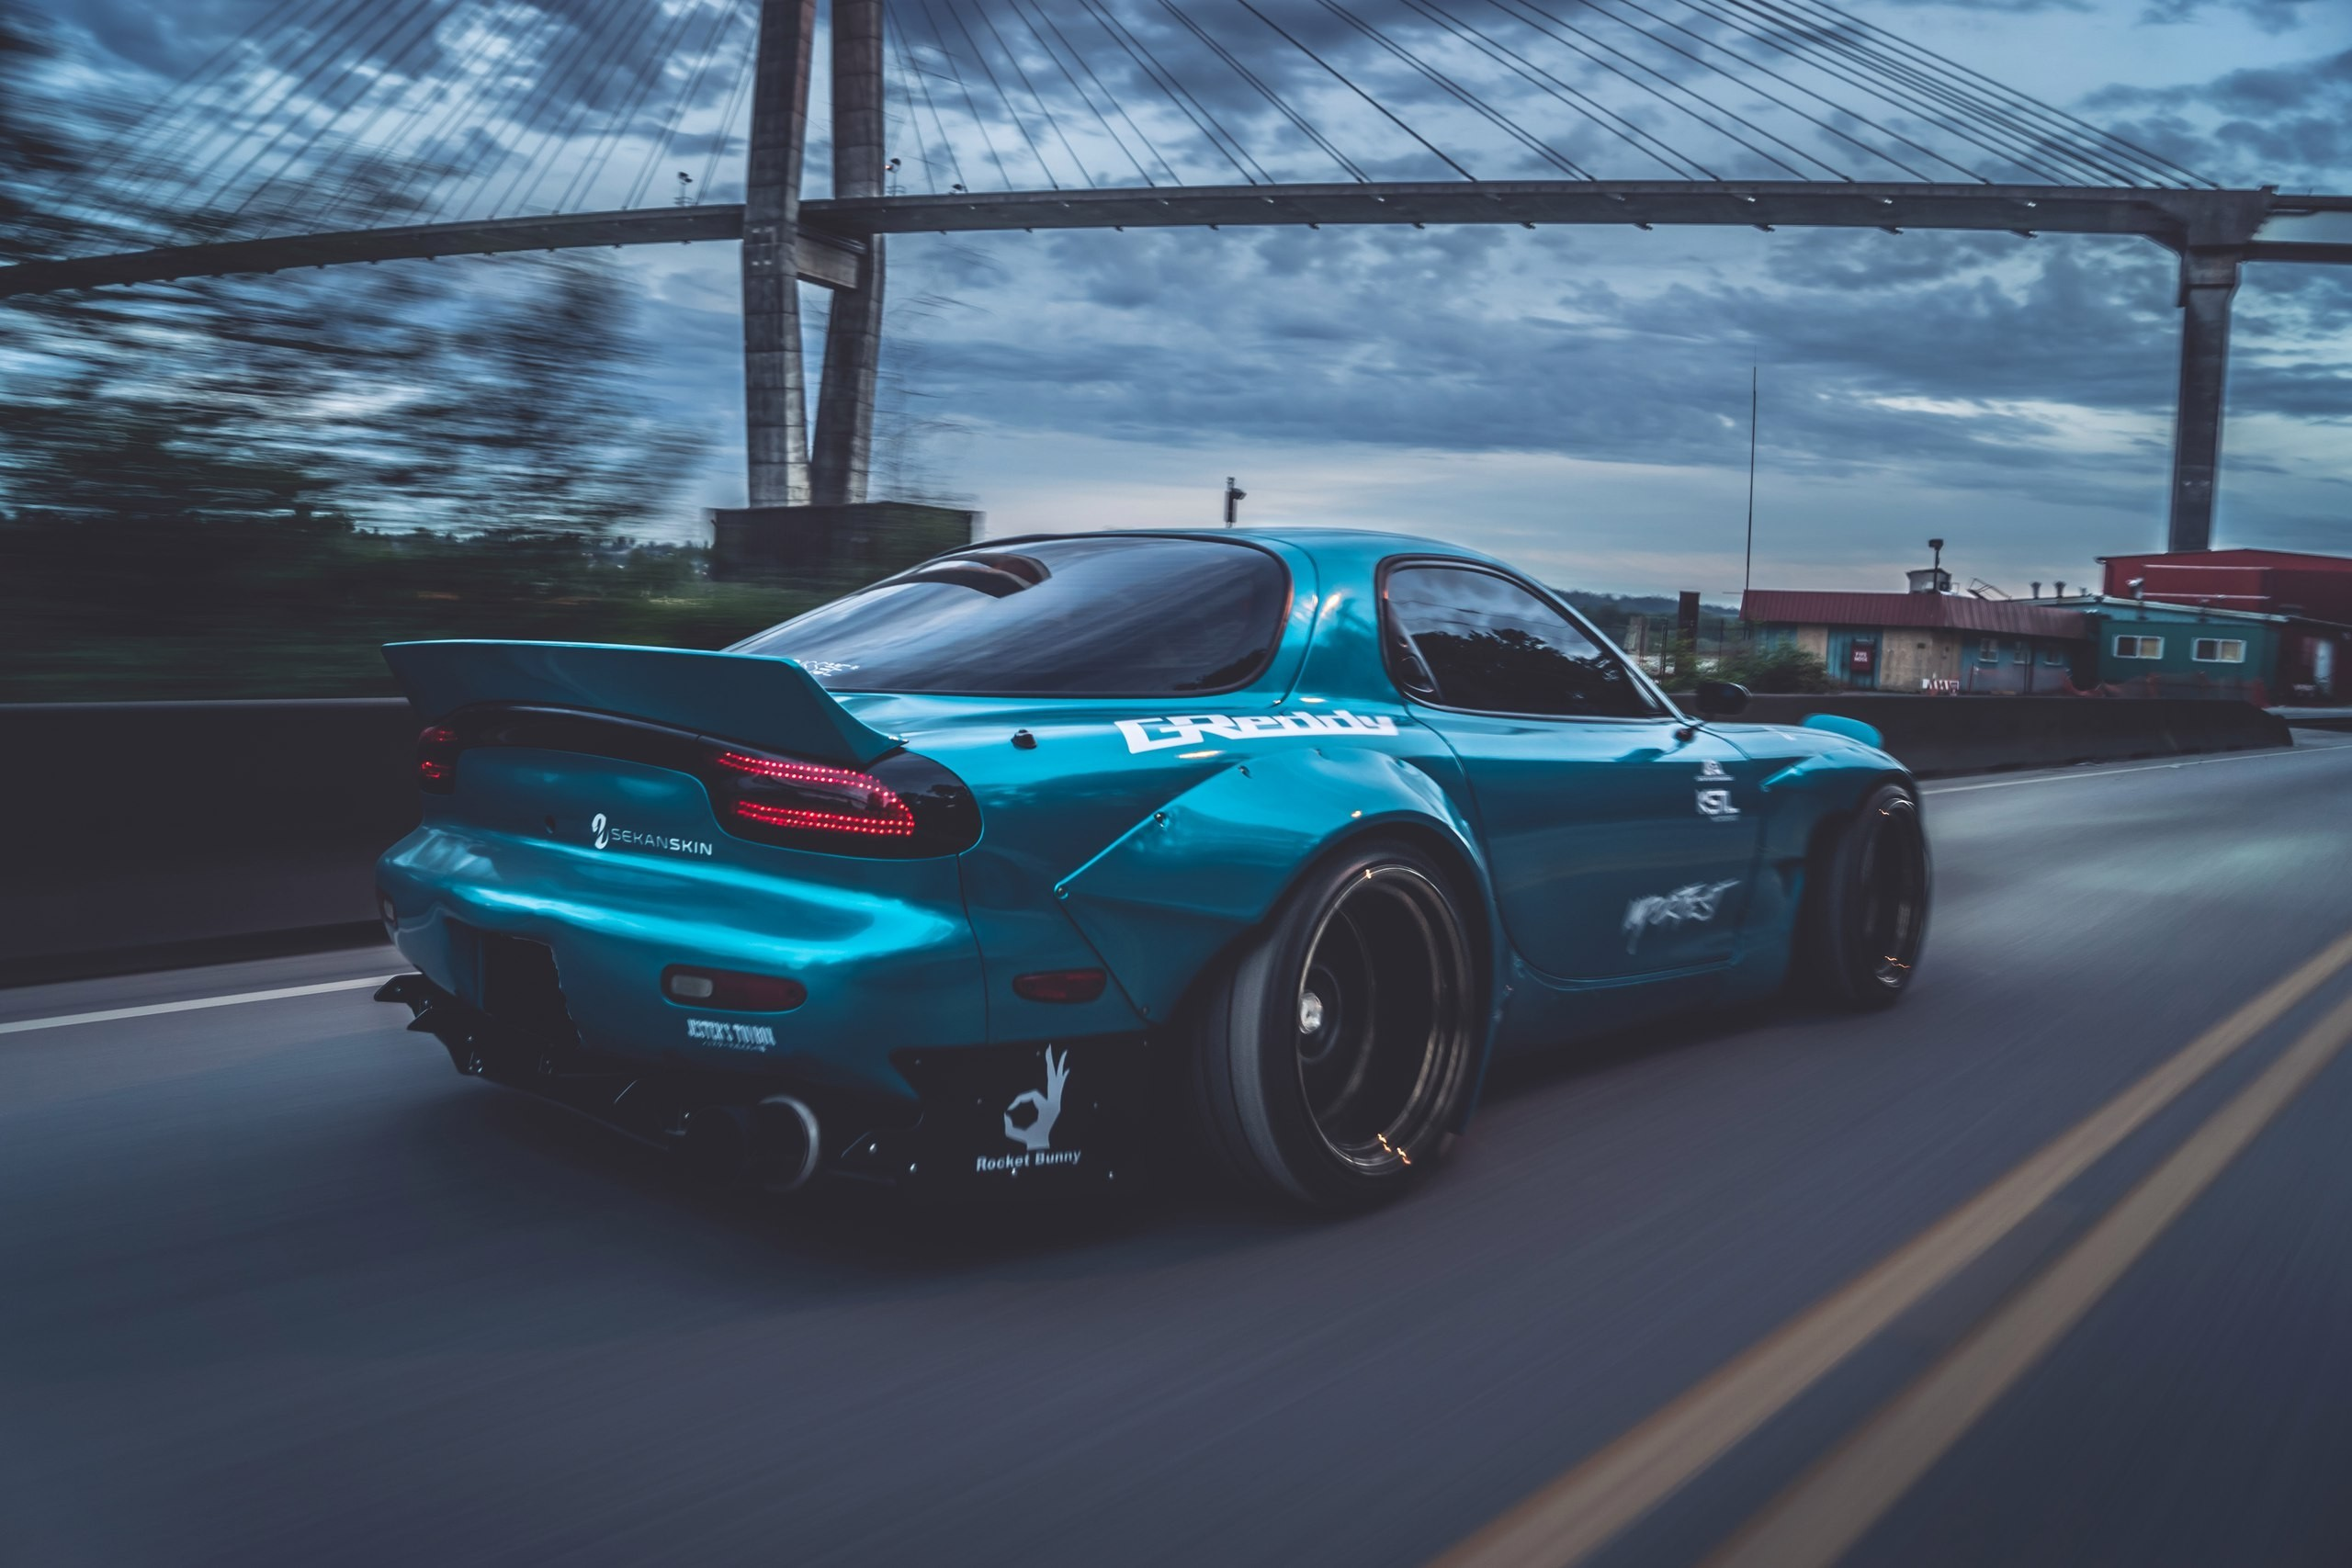 Res: 2560x1707, sports car, Mazda RX 7, Mazda, Blue cars, Bridge, Rocket Bunny